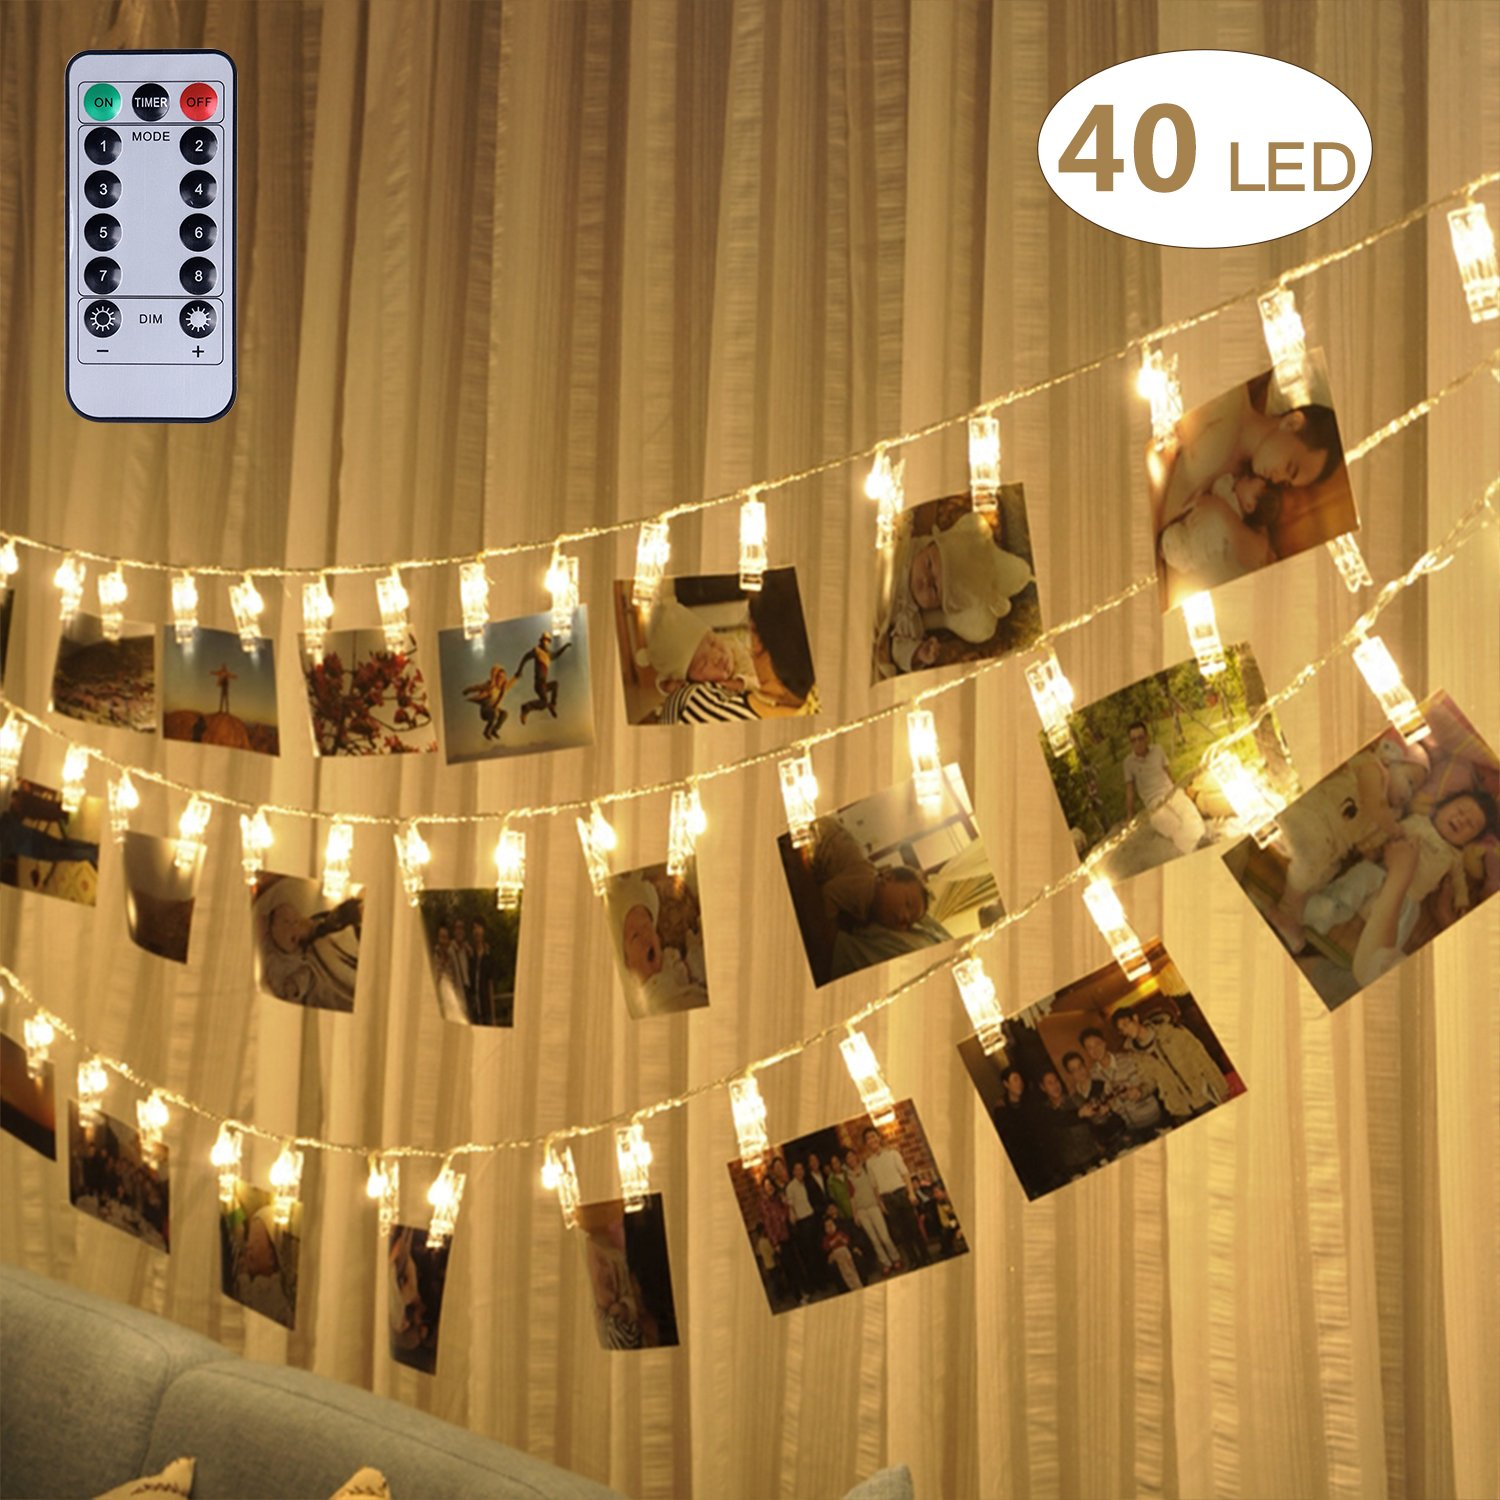 40 LED Photo Clip String Lights by Fourheart, 16 Feet Battery Operated with Remote and Timer Indoor Outdoor Decorate Lighting for Hanging Pictures Artwork Notes